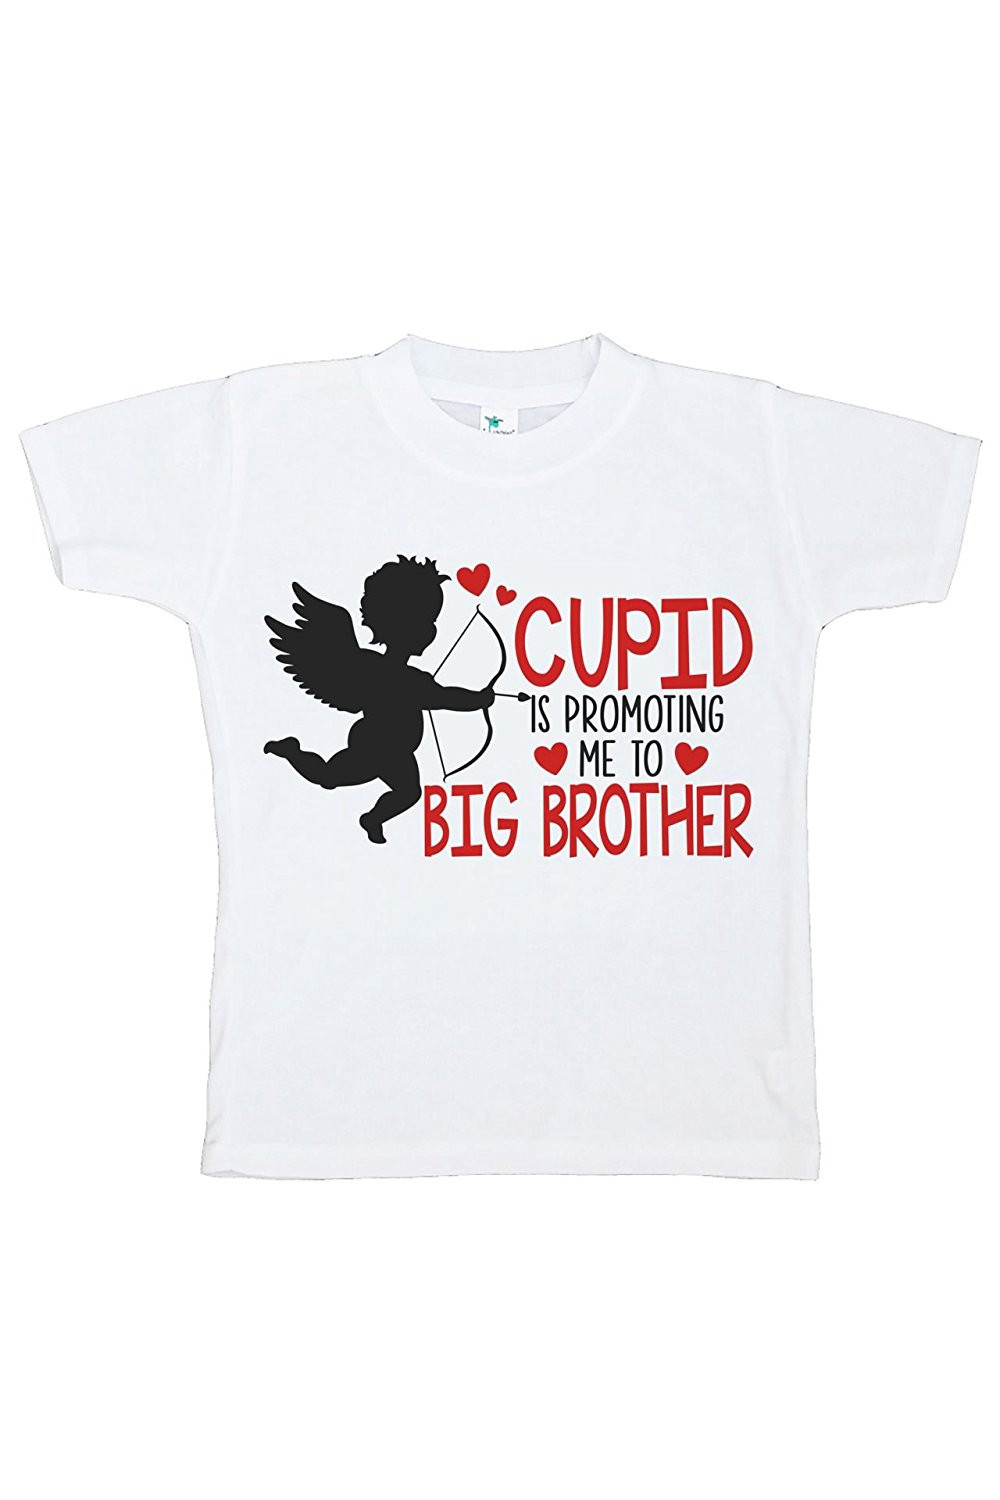 Custom Party Shop Boy's Big Brother To Be Valentine's T-shirt - Large Youth (14-16) T-shirt